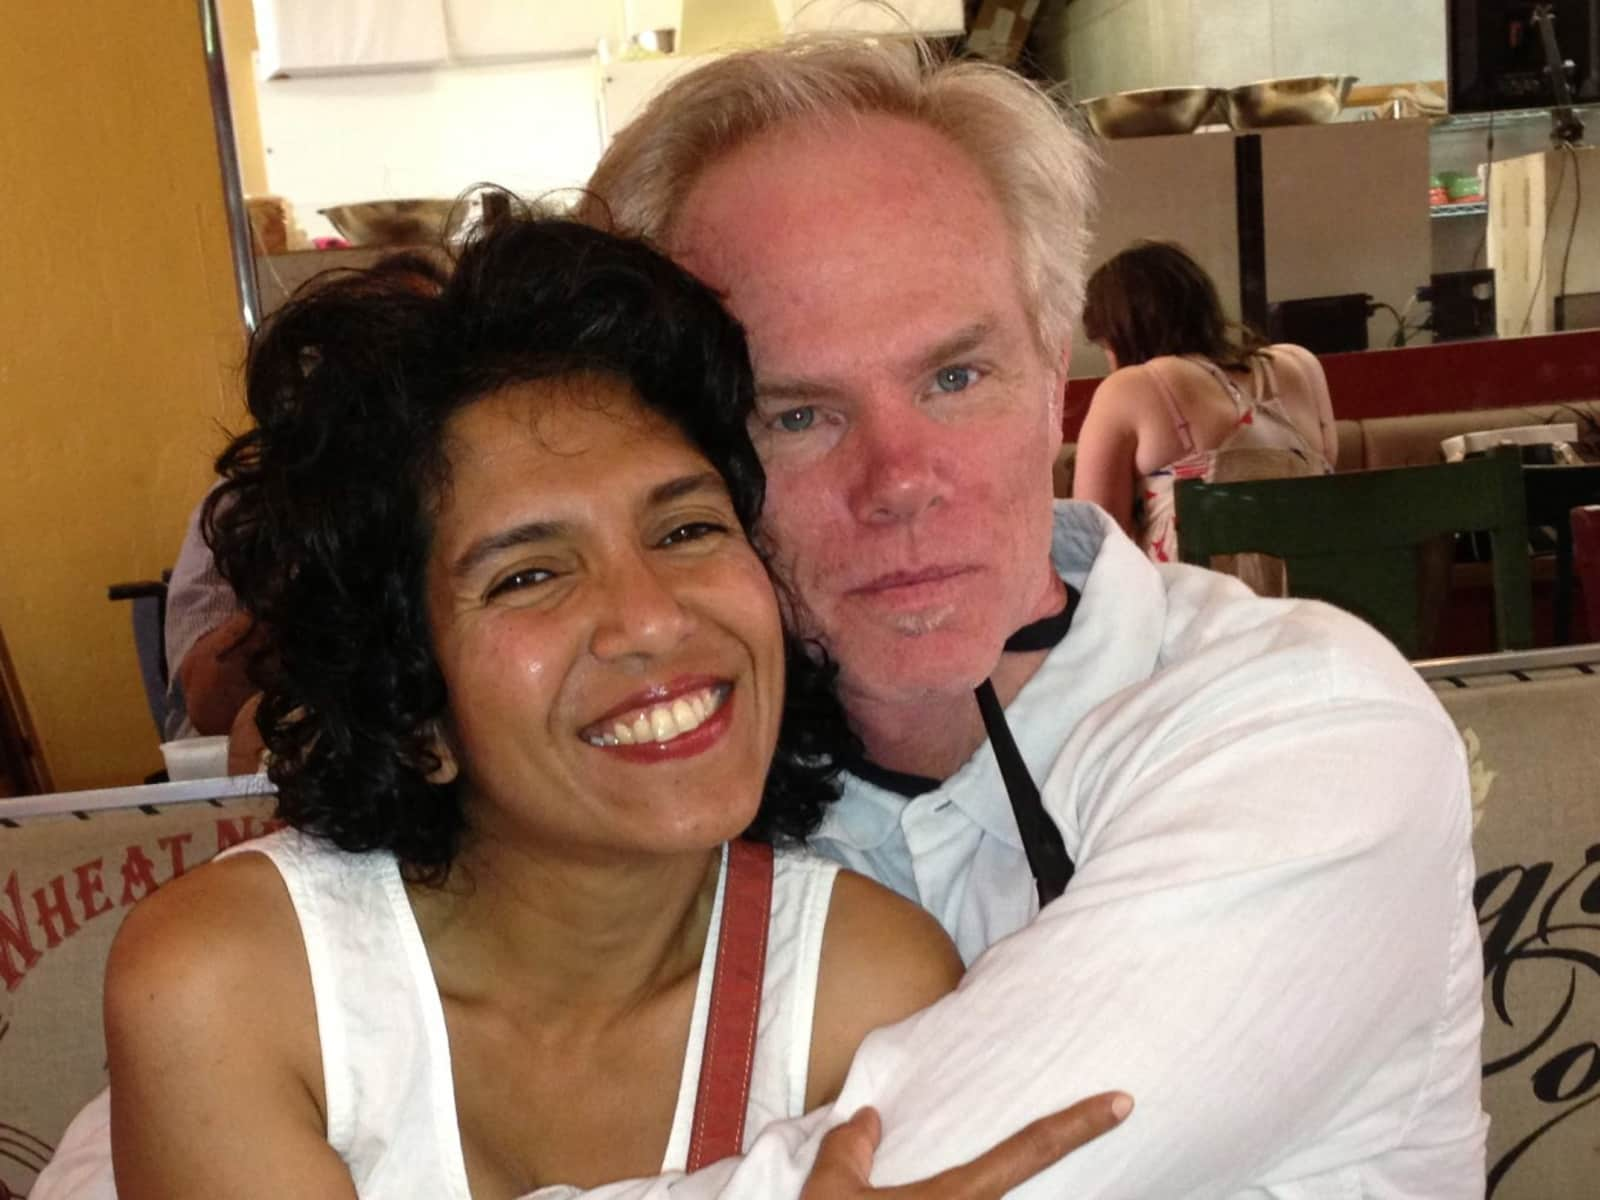 Eric & Cheryl from Los Angeles, California, United States